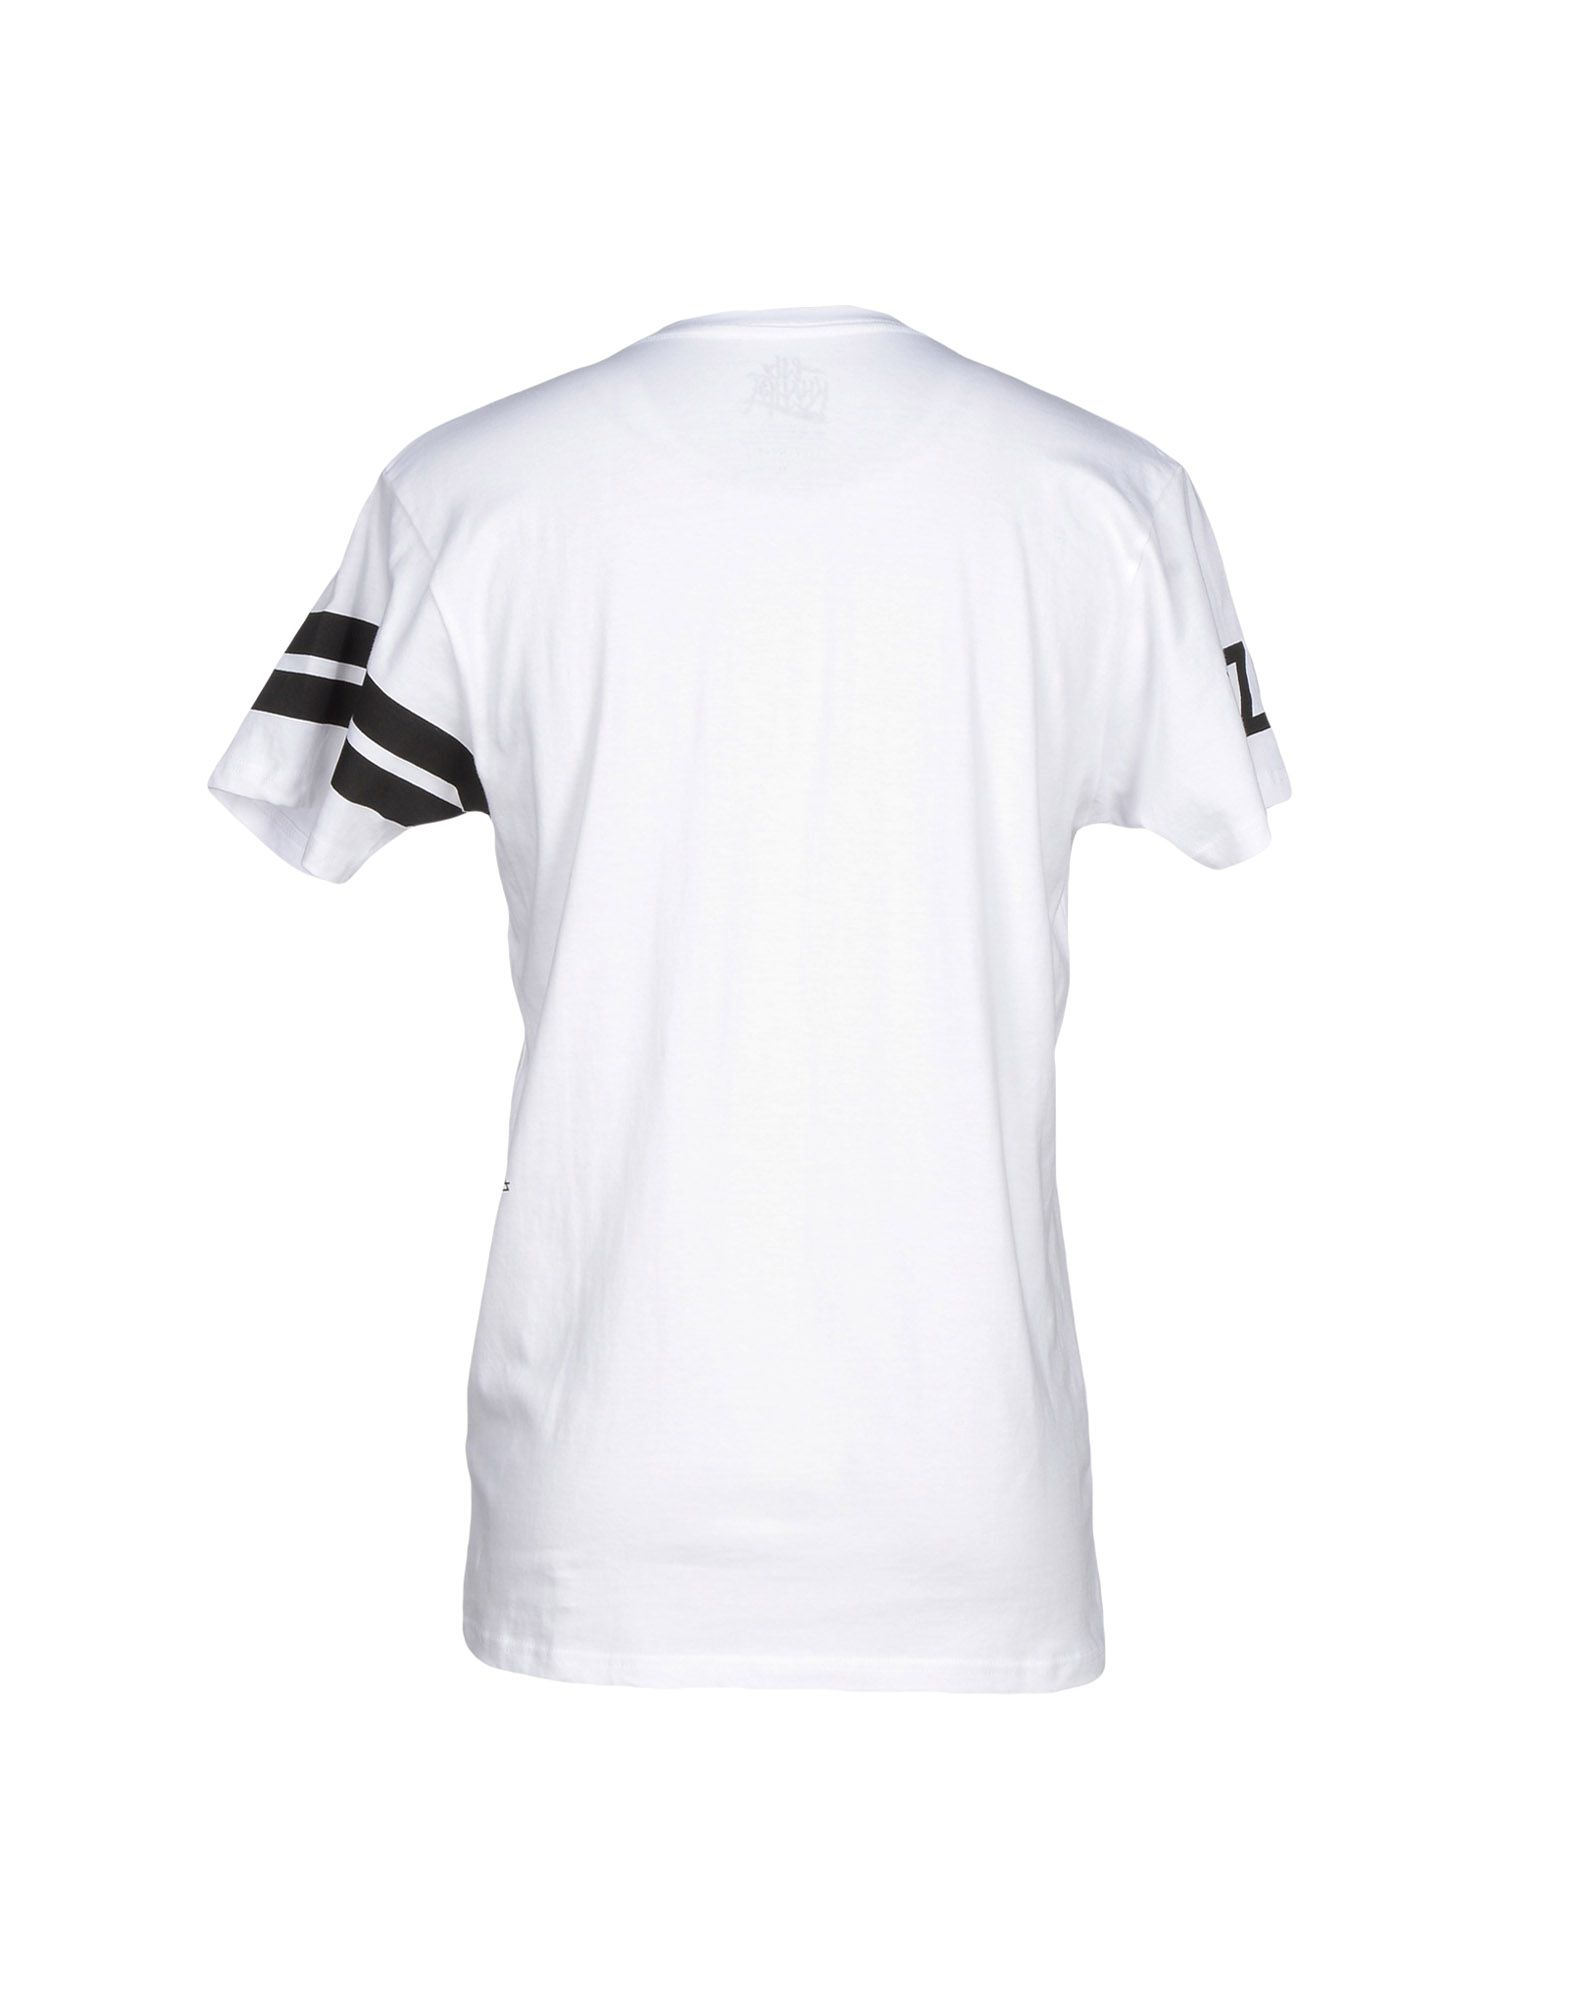 eleven paris t shirt in white for men lyst. Black Bedroom Furniture Sets. Home Design Ideas